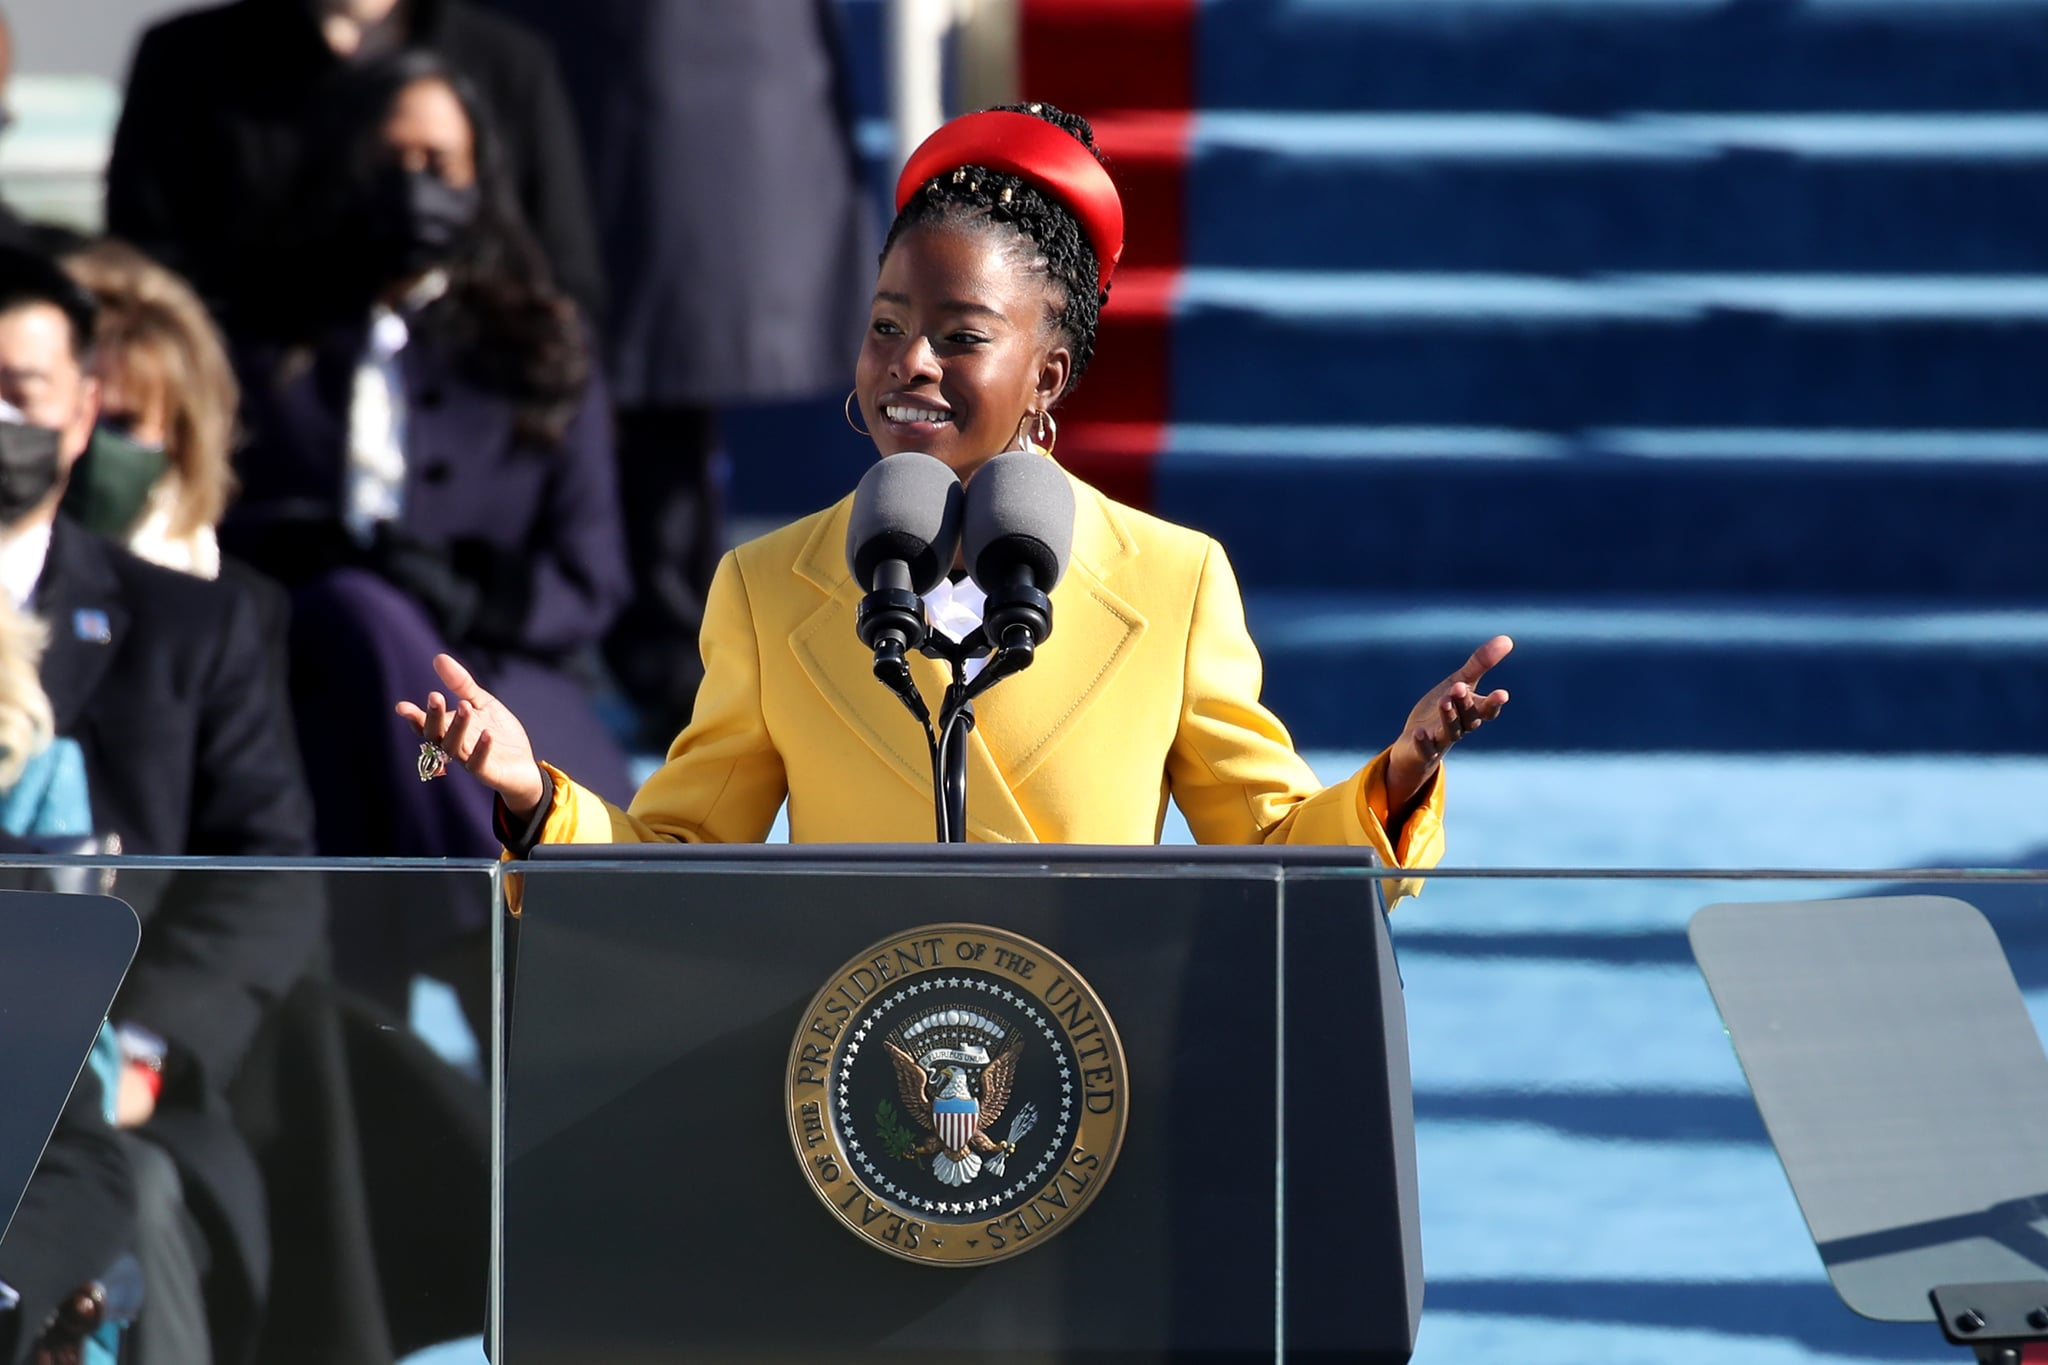 WASHINGTON, DC - JANUARY 20: Youth Poet Laureate Amanda Gorman speaks during the inauguration of U.S. President-elect Joe Biden on the West Front of the U.S. Capitol on January 20, 2021 in Washington, DC. During today's inauguration ceremony Joe Biden becomes the 46th president of the United States. (Photo by Rob Carr/Getty Images)